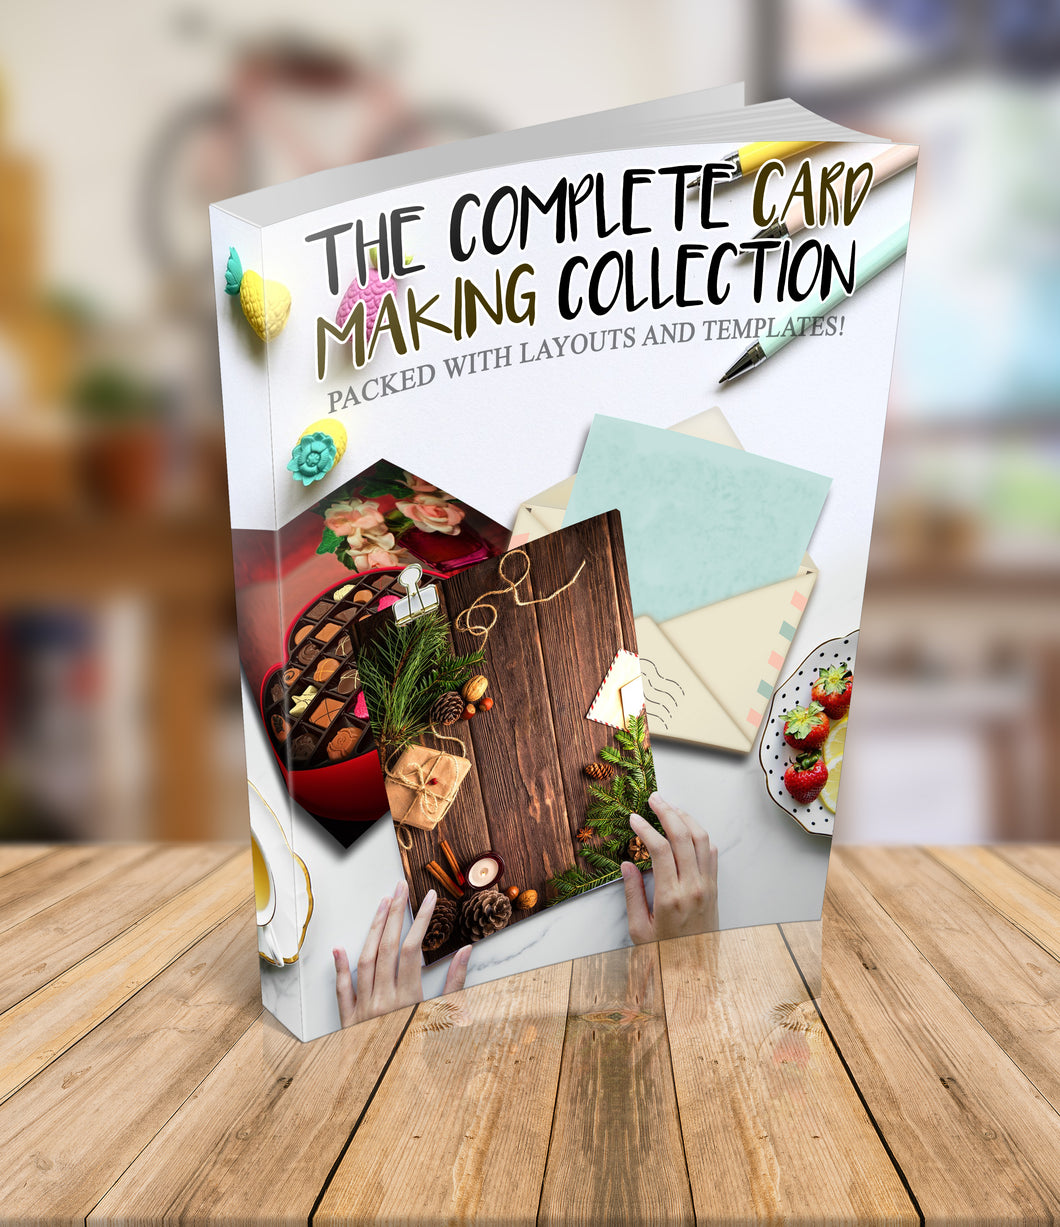 The Complete Card Making Collection - Super eBook Sale!